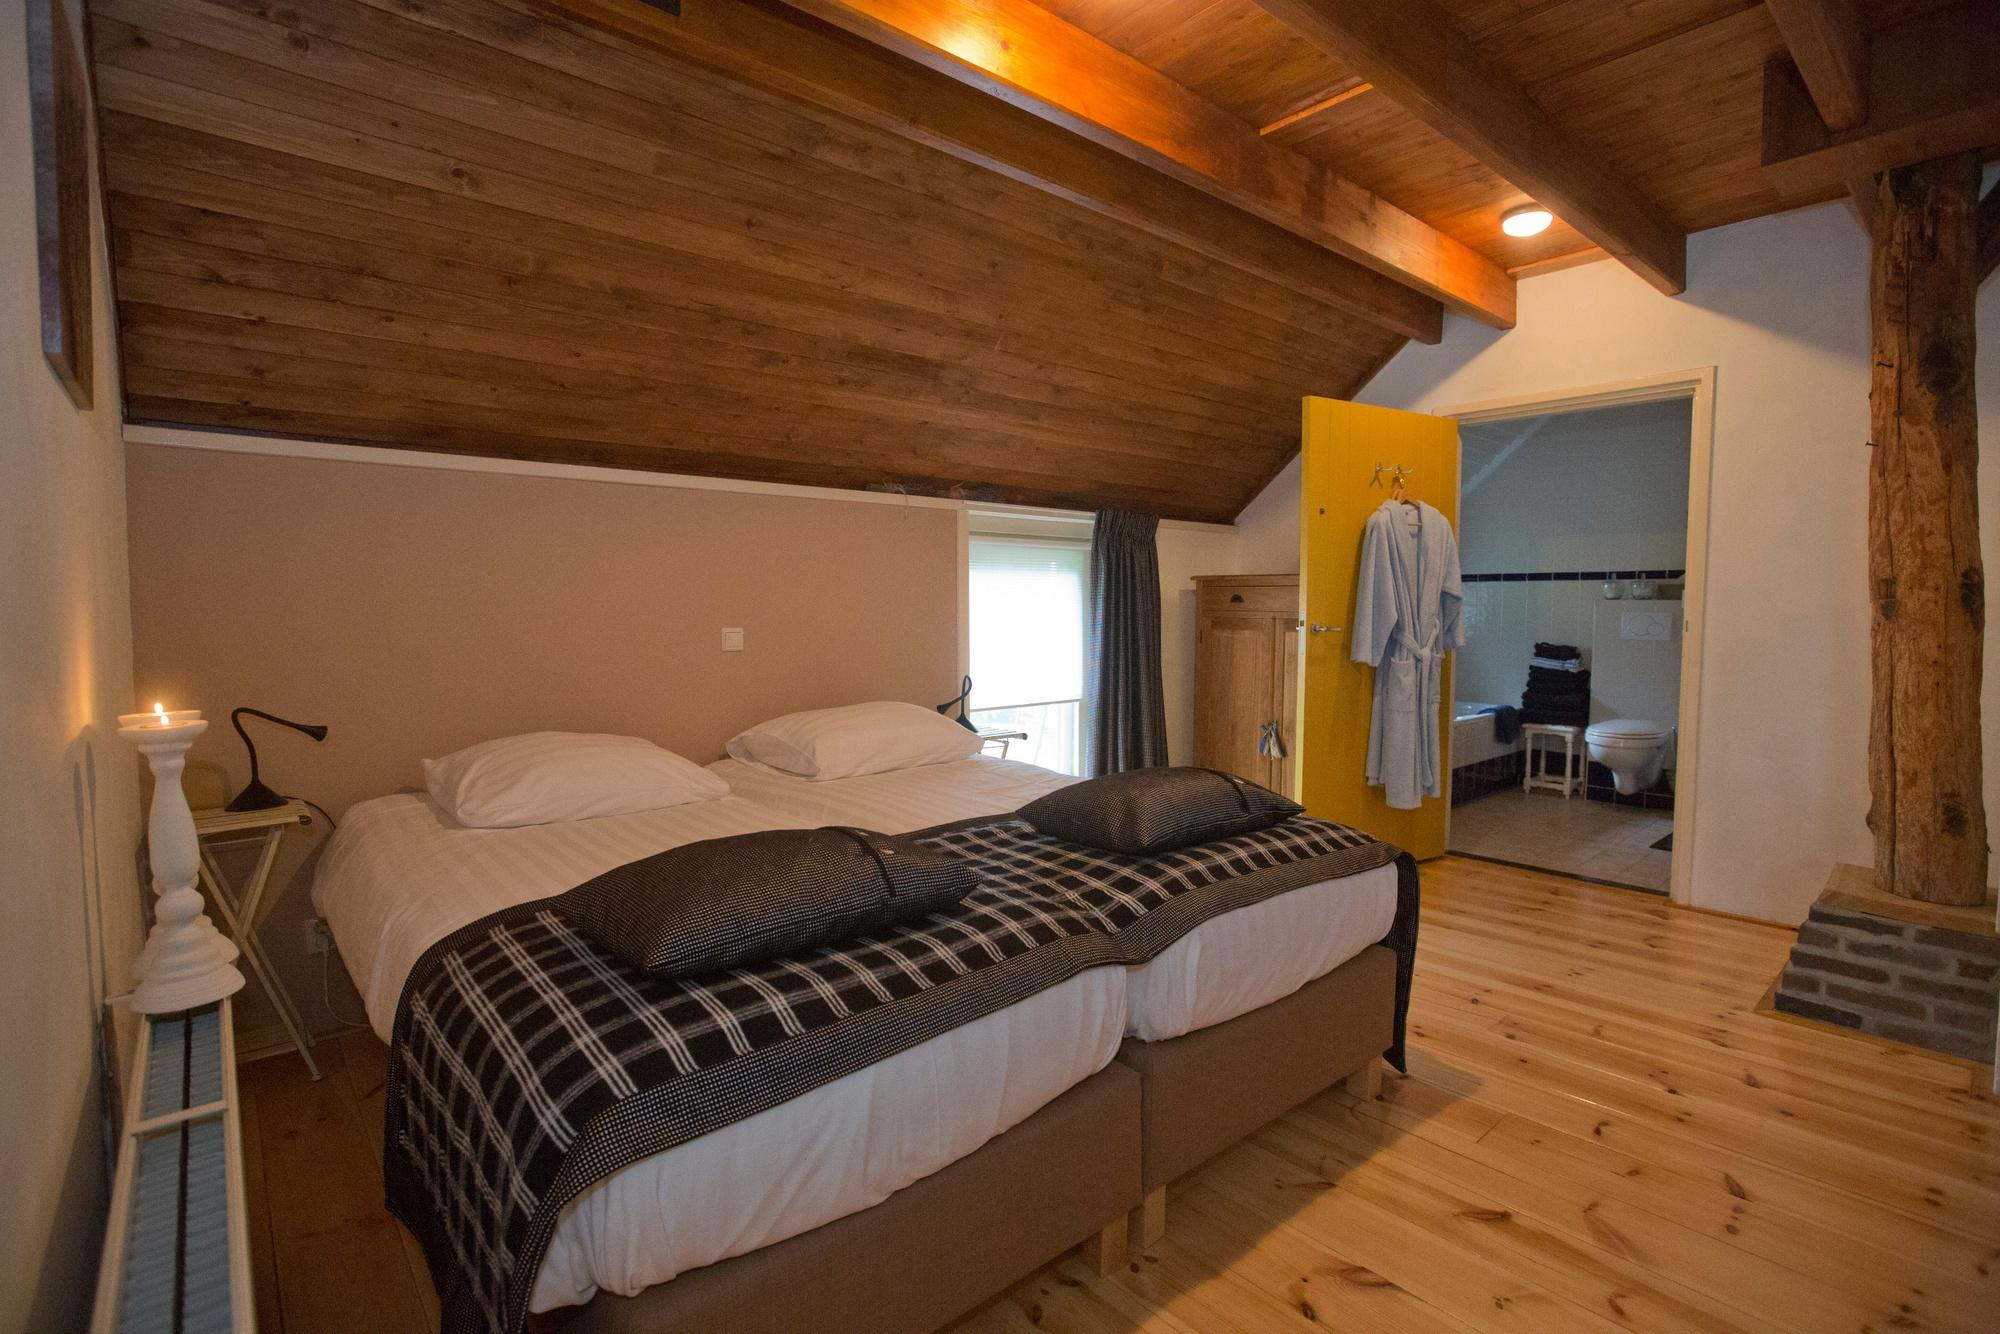 Kamer 7 Bed and Breakfast